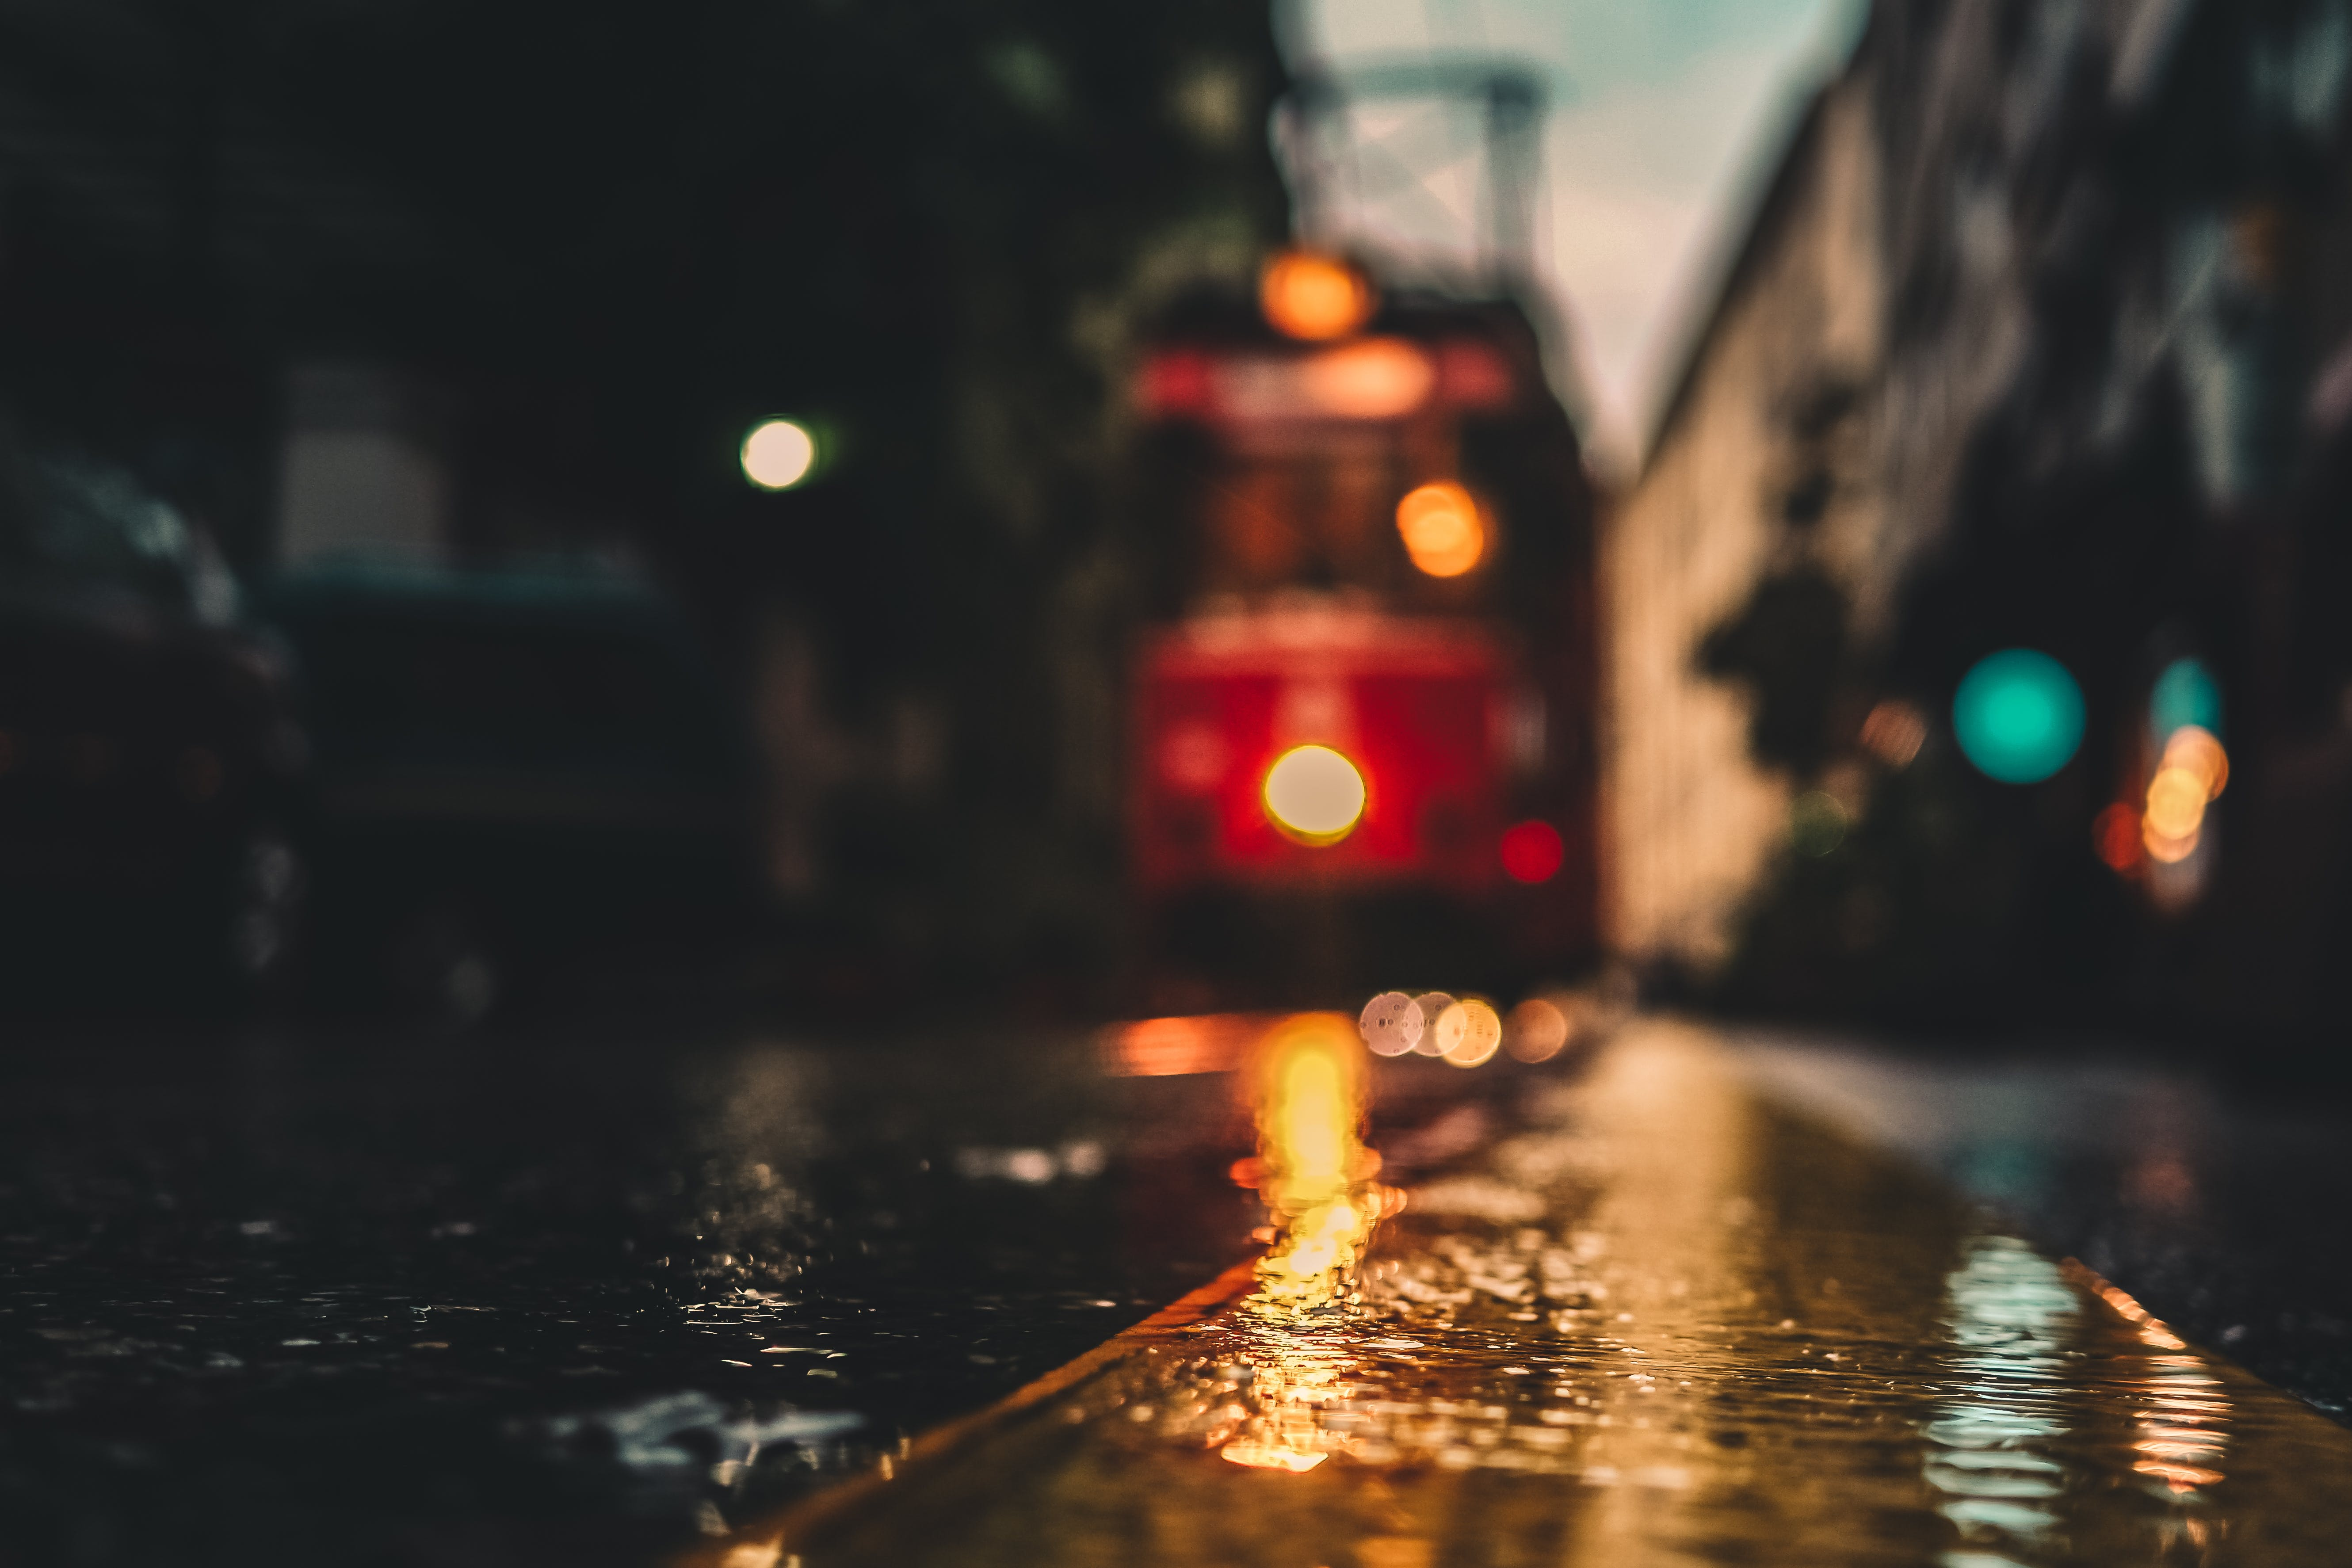 Out of Focus Tram in Bokeh Photography